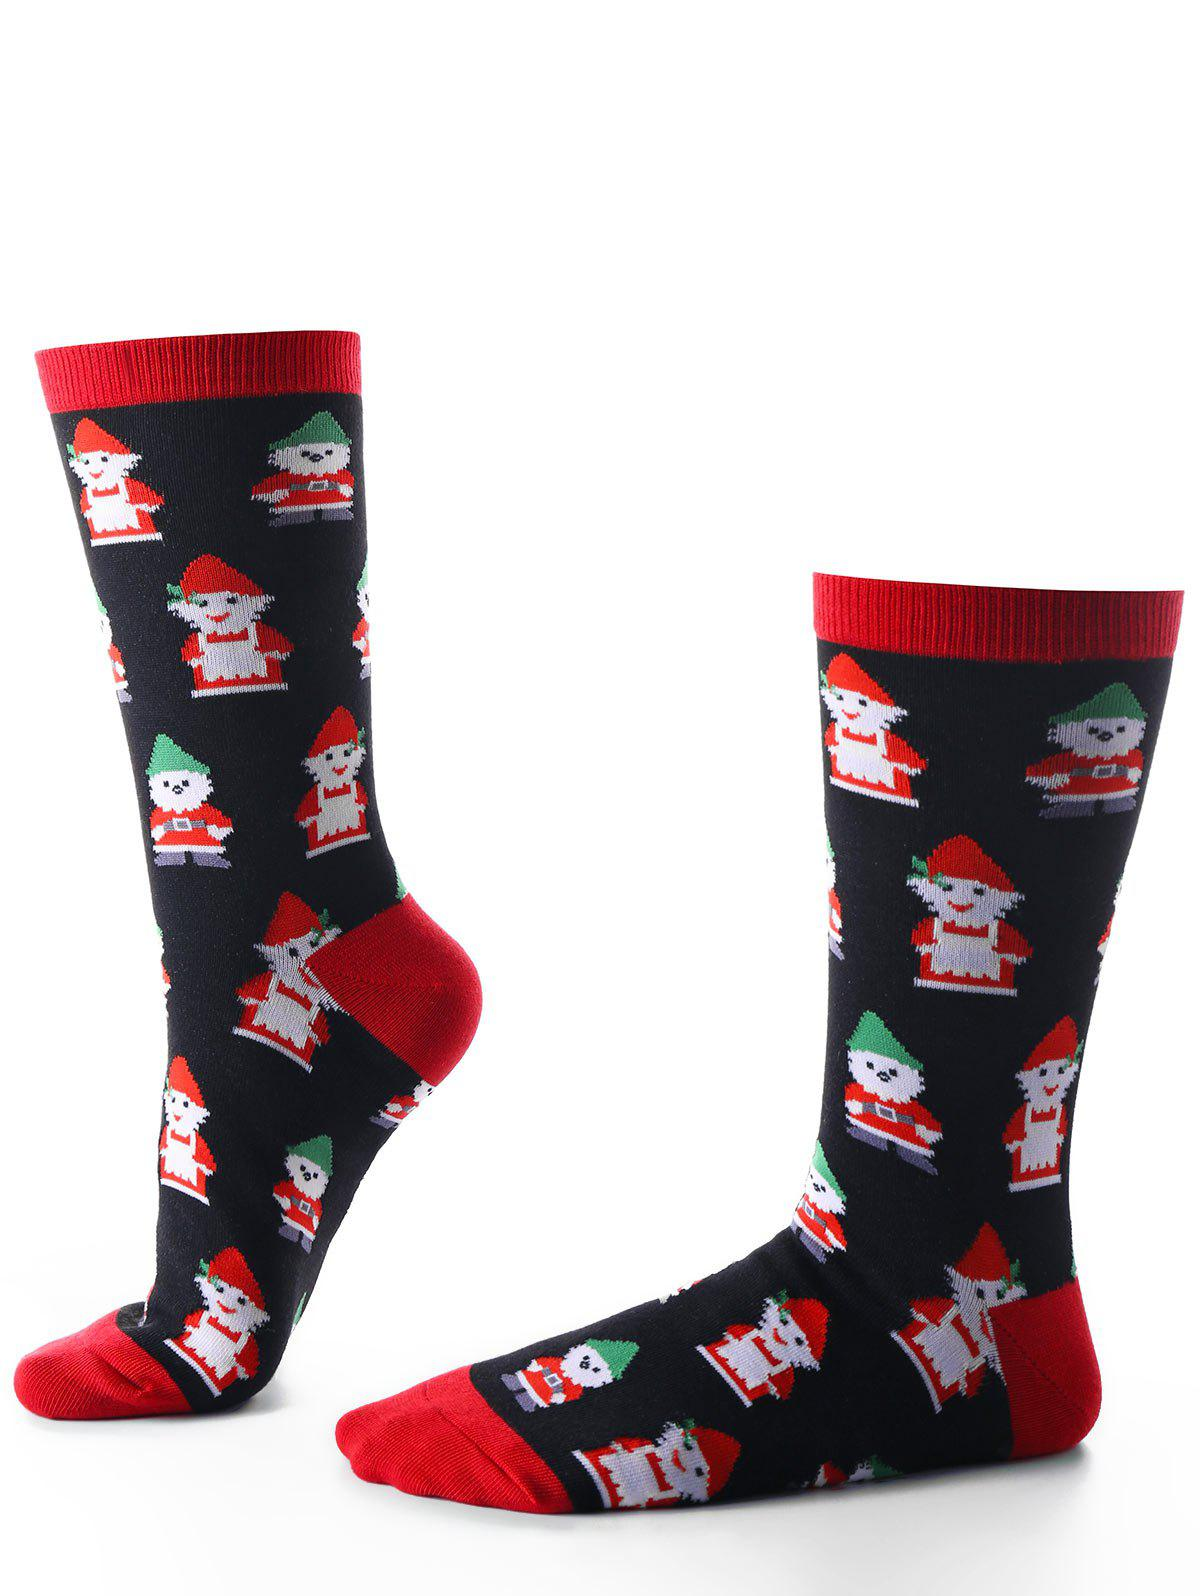 Santa Claus Warm Christmas SocksACCESSORIES<br><br>Color: BLACK; Type: Socks; Group: Adult; Gender: Unisex; Style: Fashion; Pattern Type: Print; Weight: 0.1100kg; Package Contents: 1 x Socks;